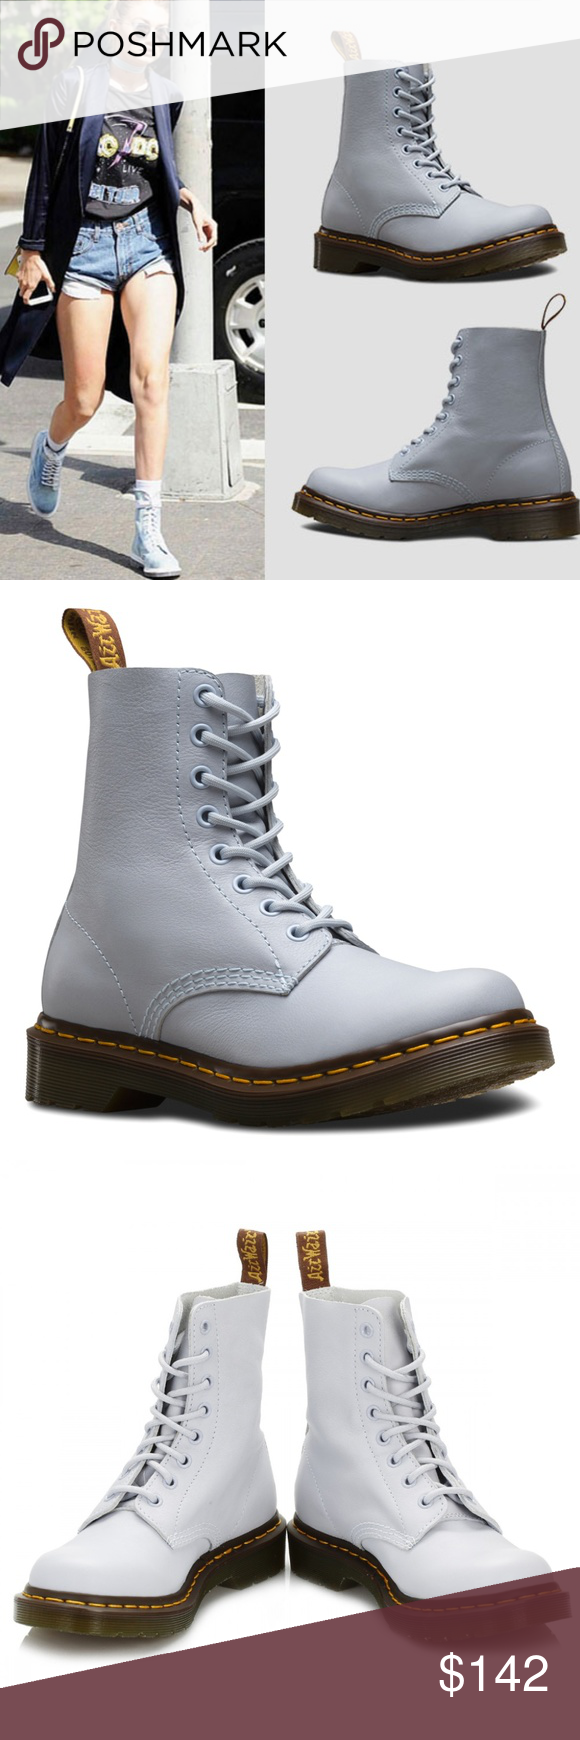 Dr. Martens Blue Moon Pascal Virginia Leather Boot NWT